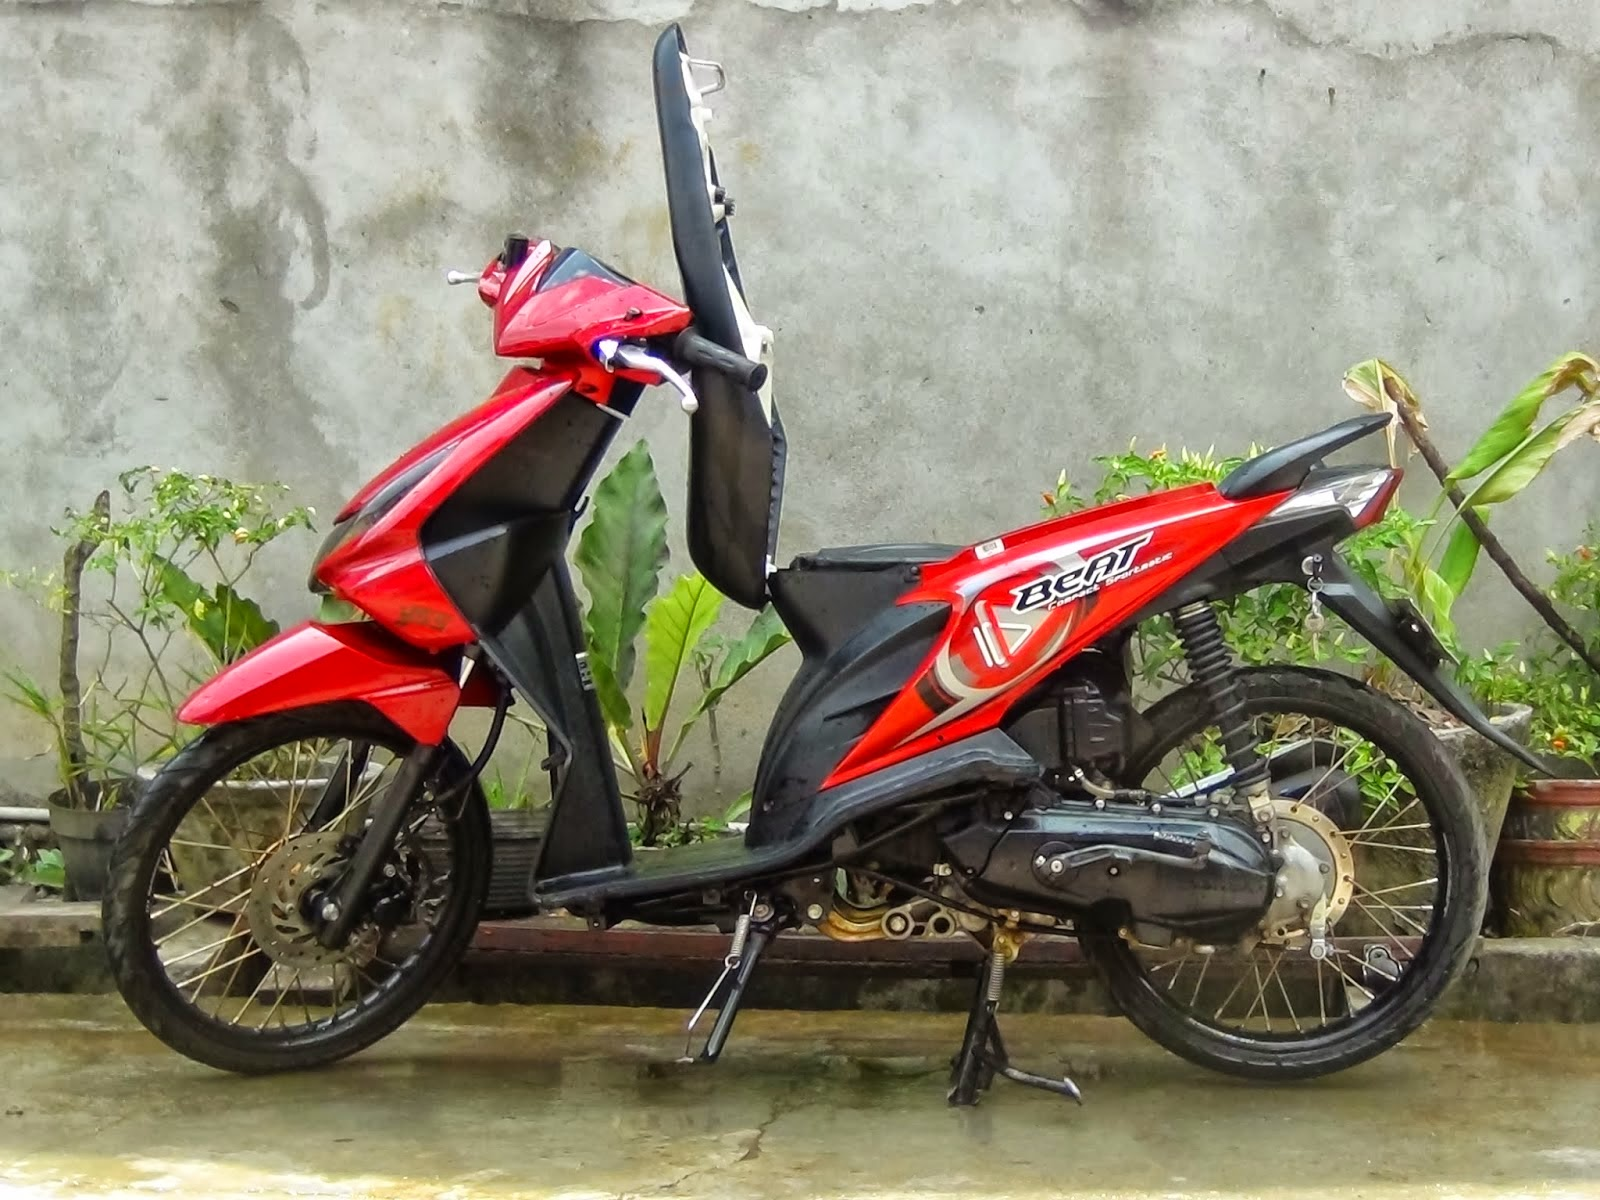 Download 99 Honda Beat Fi Modifikasi Lowrider Terbaru Dan Terkeren